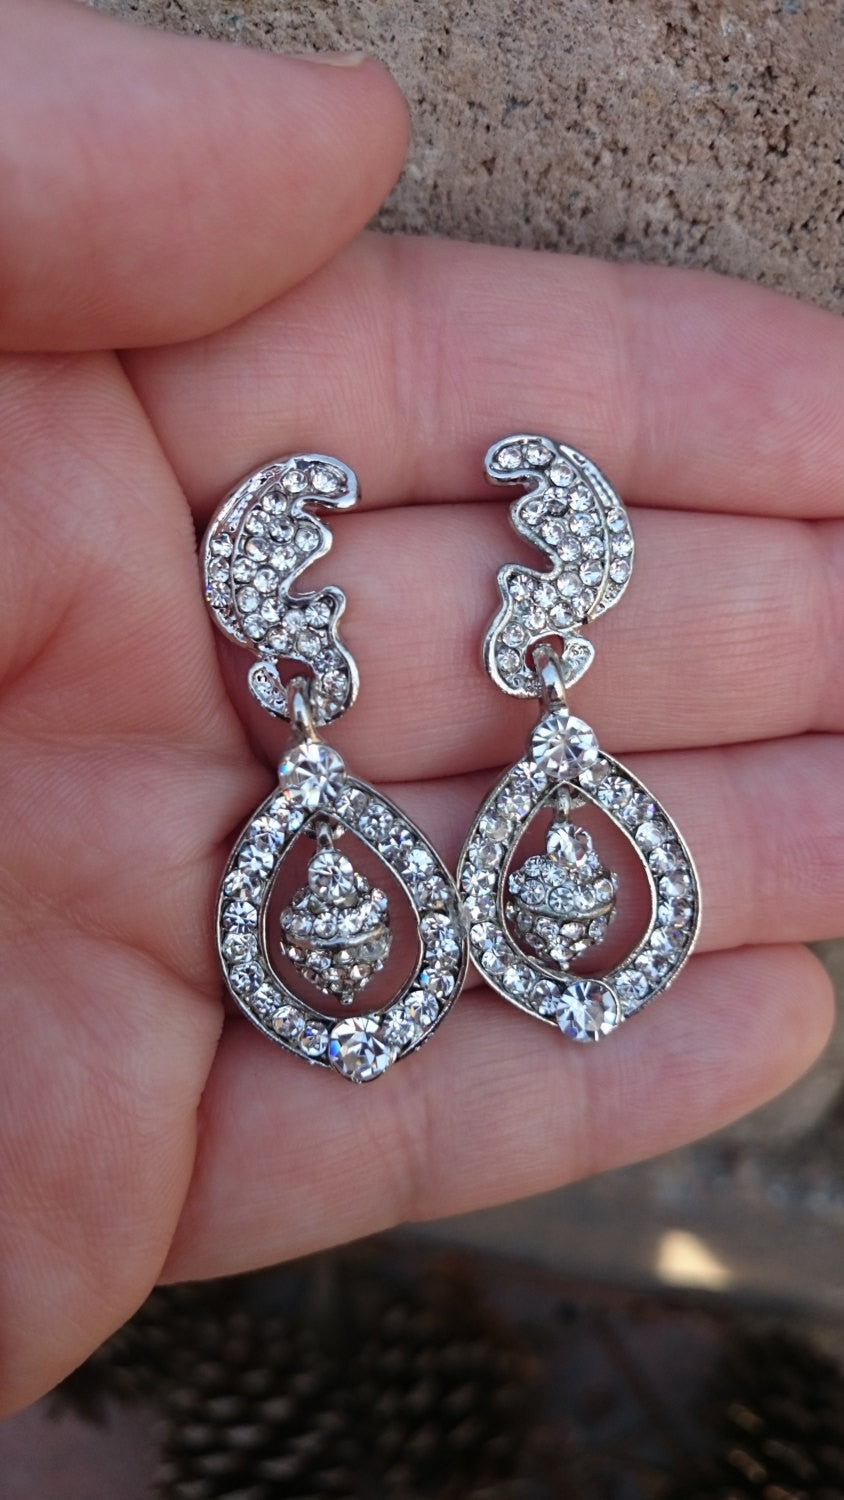 Kate Middleton Inspired CZ earrings,Royal Wedding cubic zirconia earrings, wedding jewelry, bridal jewelry, bridal earrings, Duchess